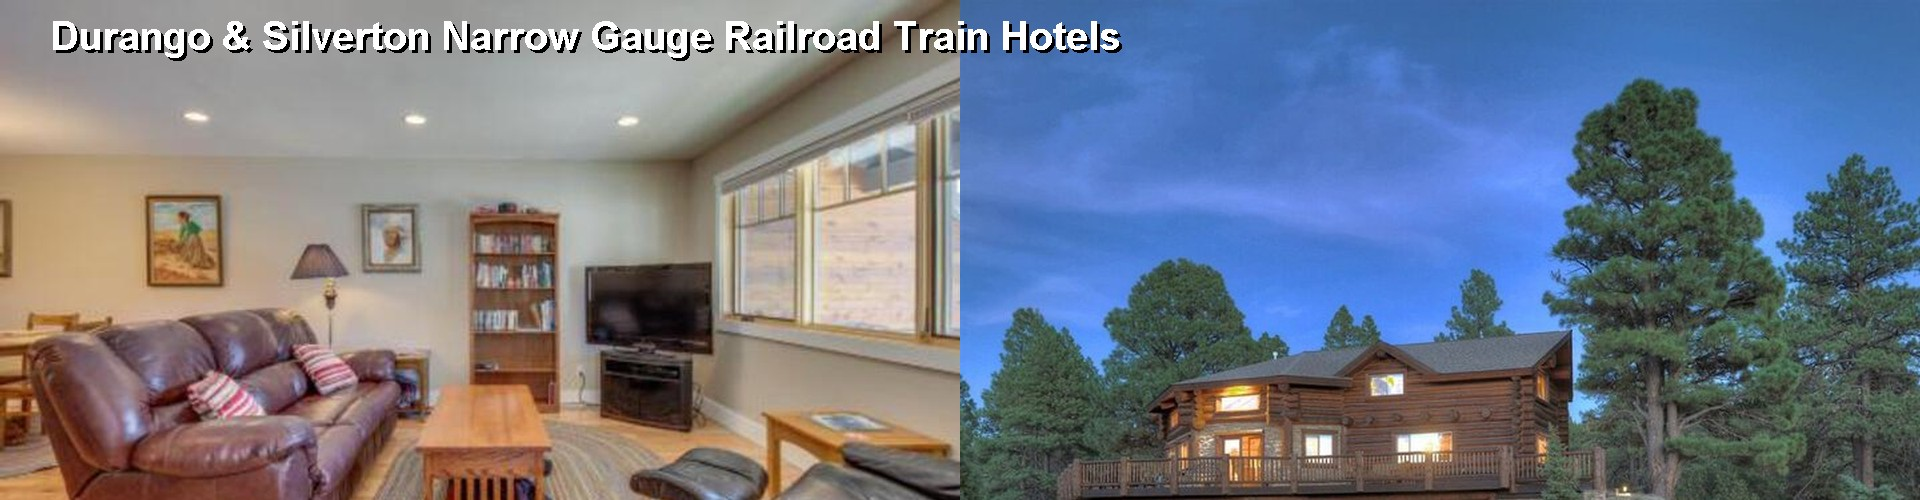 5 Best Hotels near Durango & Silverton Narrow Gauge Railroad Train